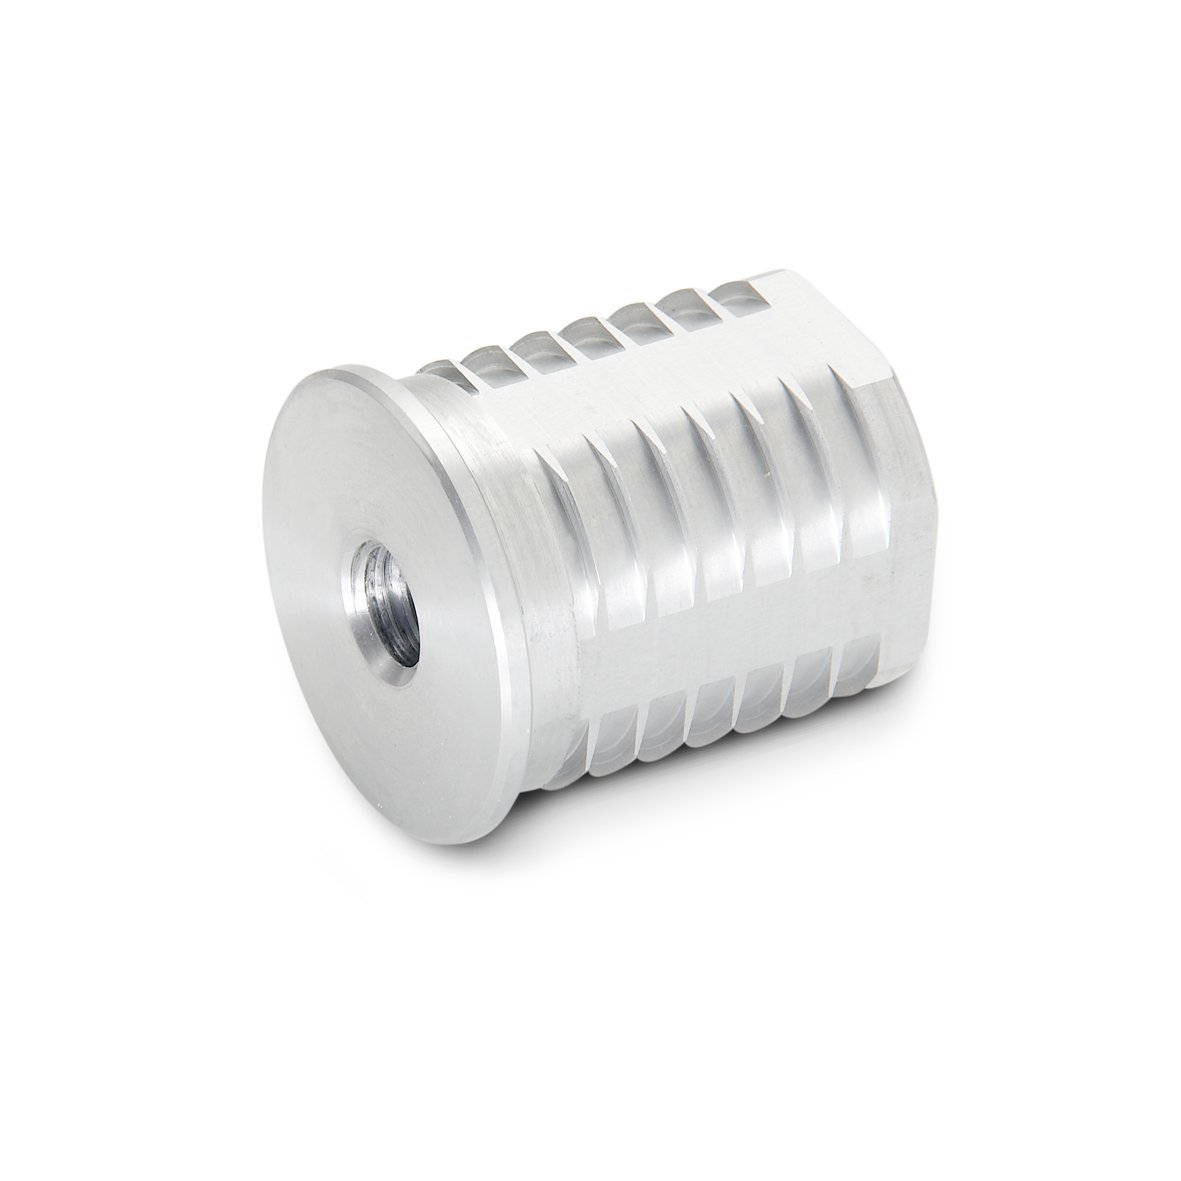 2.01 Item Length 1//2-13 Thread Size 1.78 Inside Square 1124 Pounds Static Load JW Winco 448V2V1788T Series EN 448S Plastic Black Square Type Threaded Tube End with Molded-in Insert